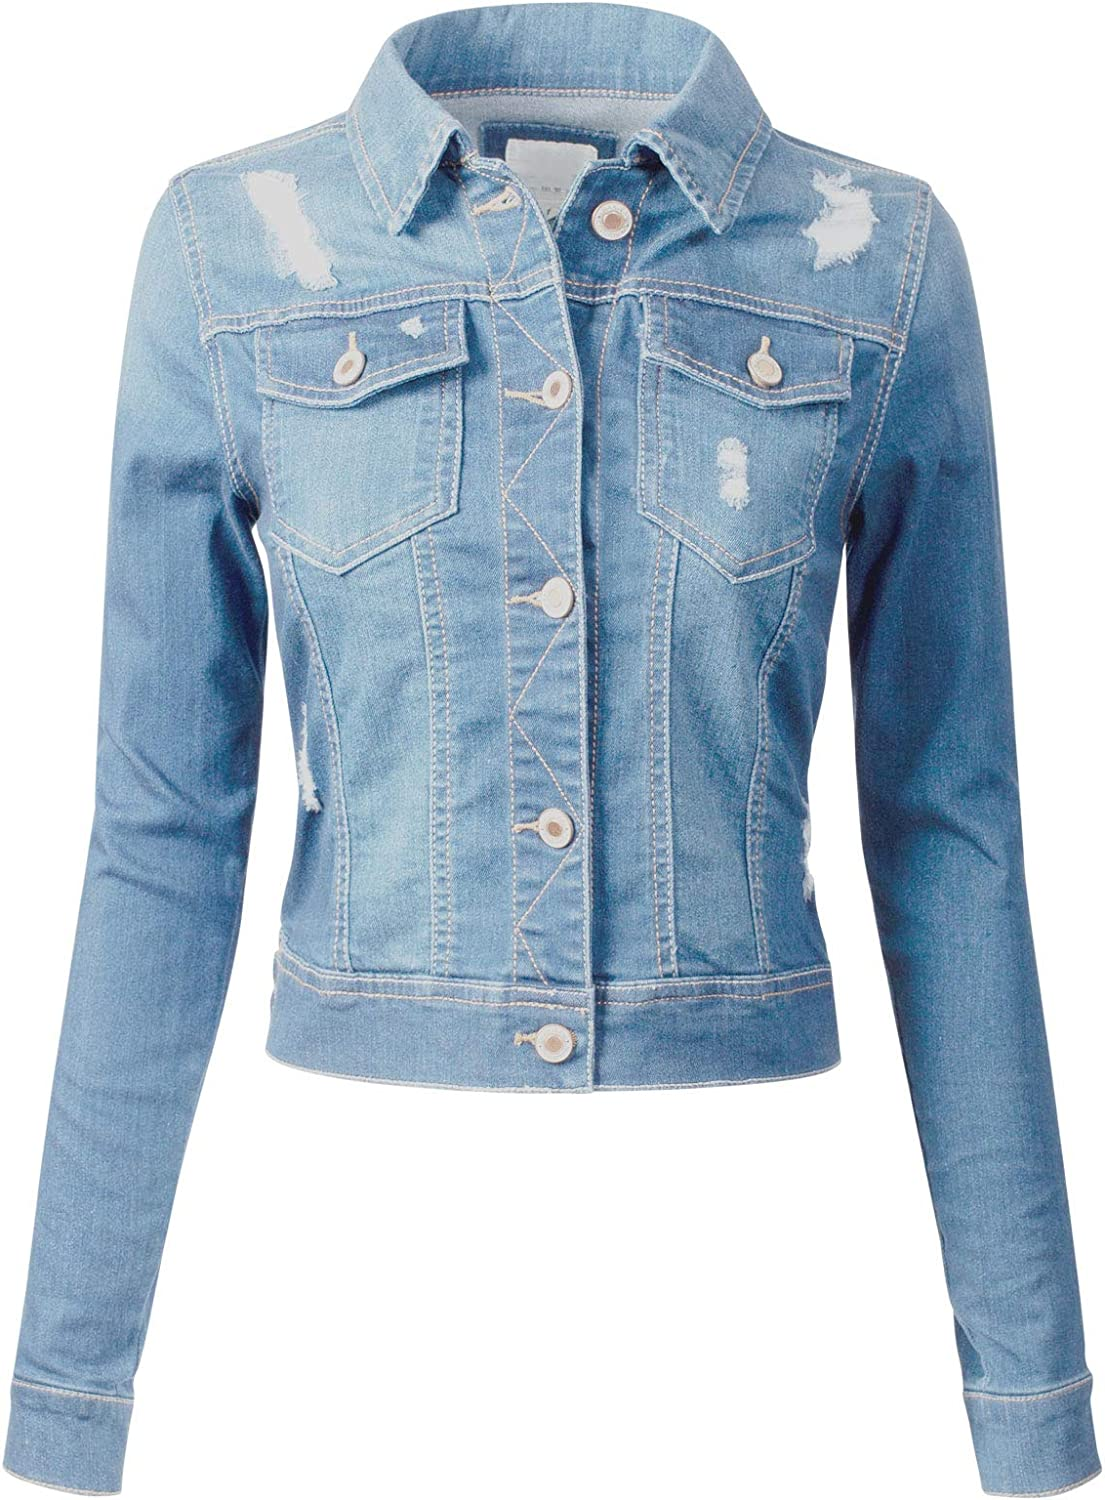 Design by Olivia Womens Long Sleeve Crop Top Button Up Comfort Stretch Denim Jacket